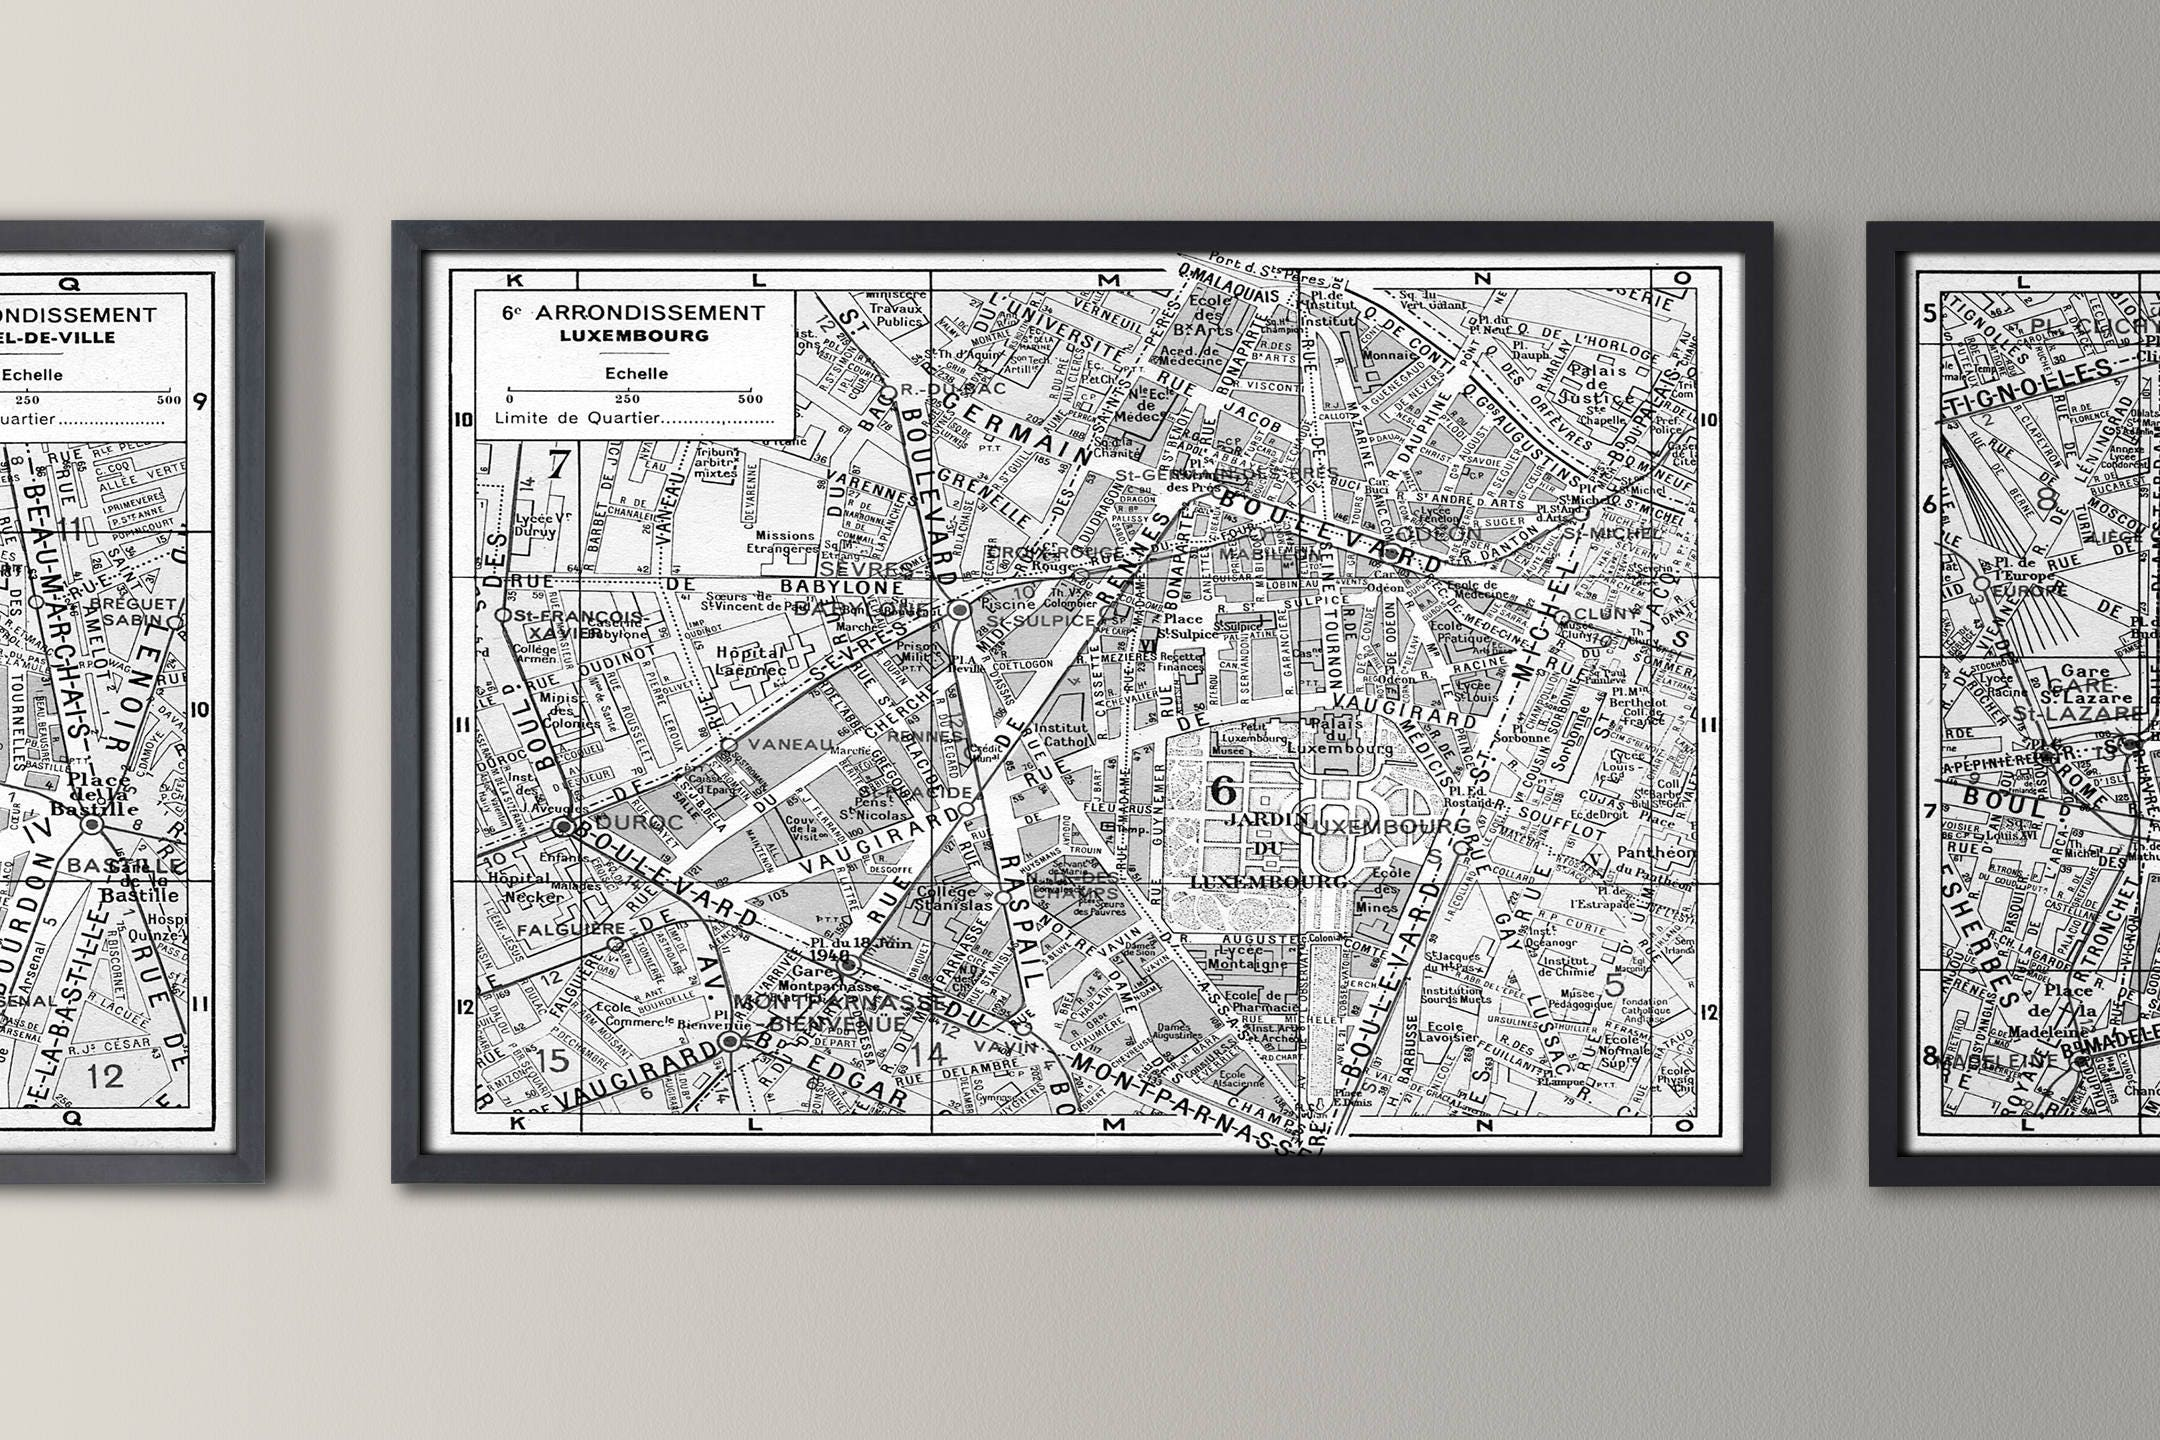 Paris Map 6th Arrondissement Map Luxembourg Map Print Vintage Paris Arrondissement Map Paris Map Print Poster 1950s